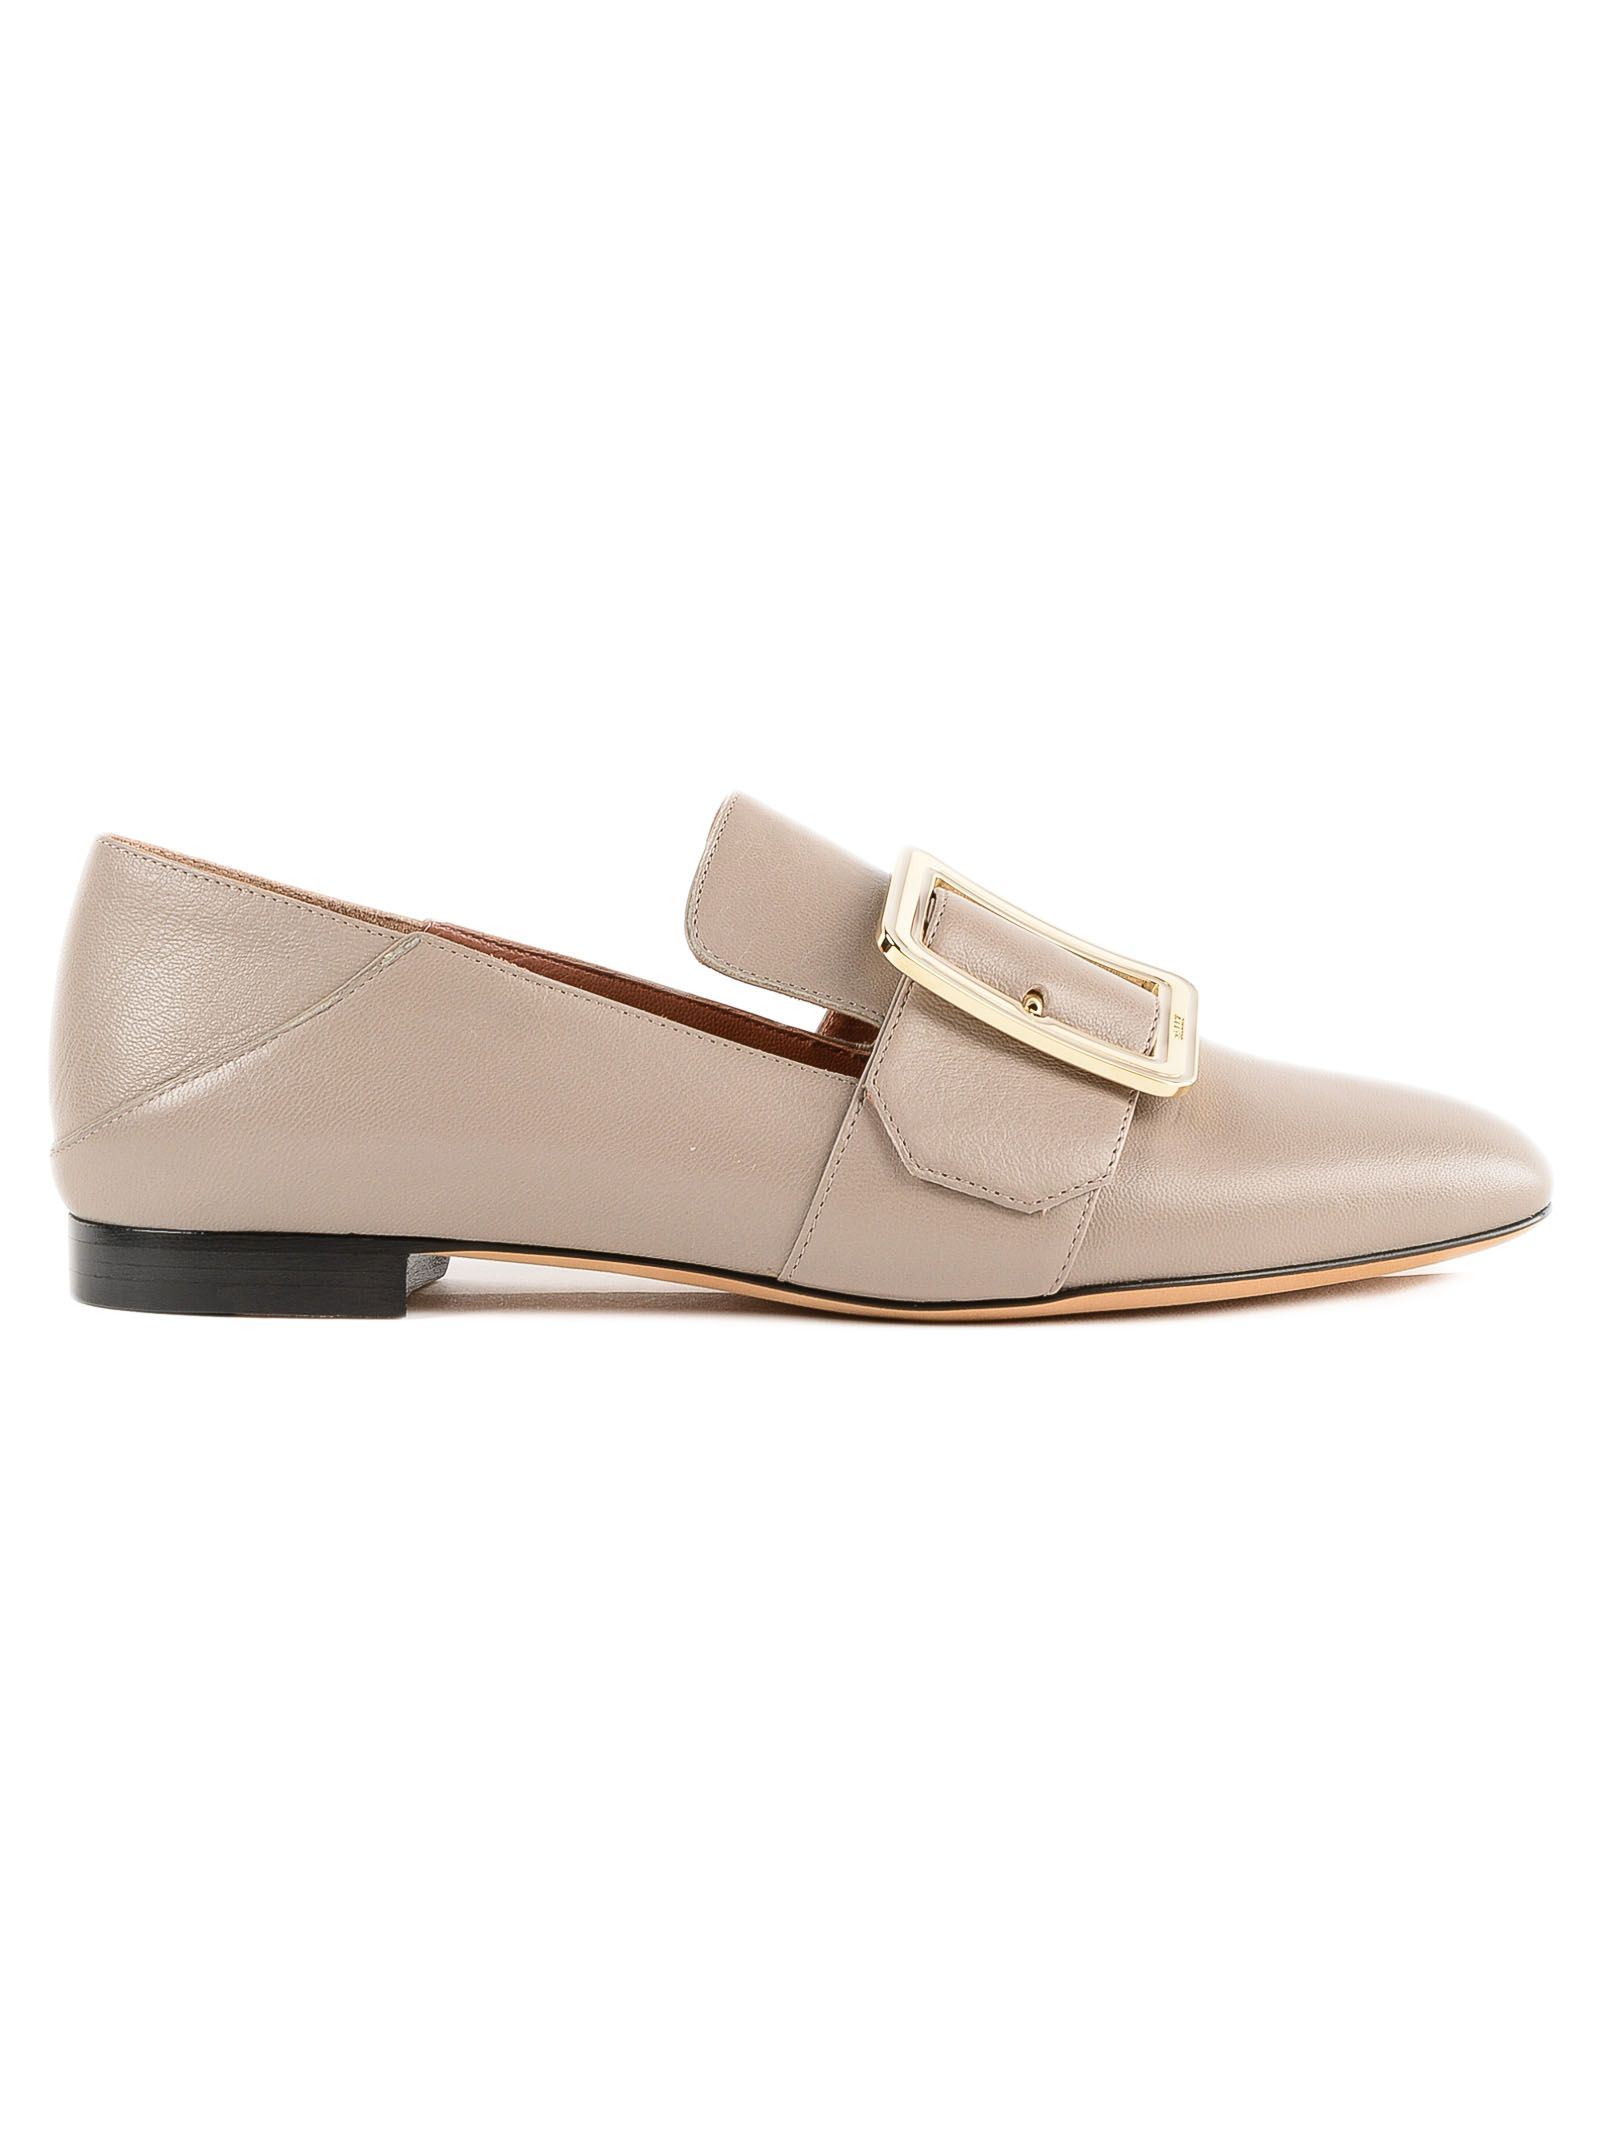 Janelle Loafers, Wheat